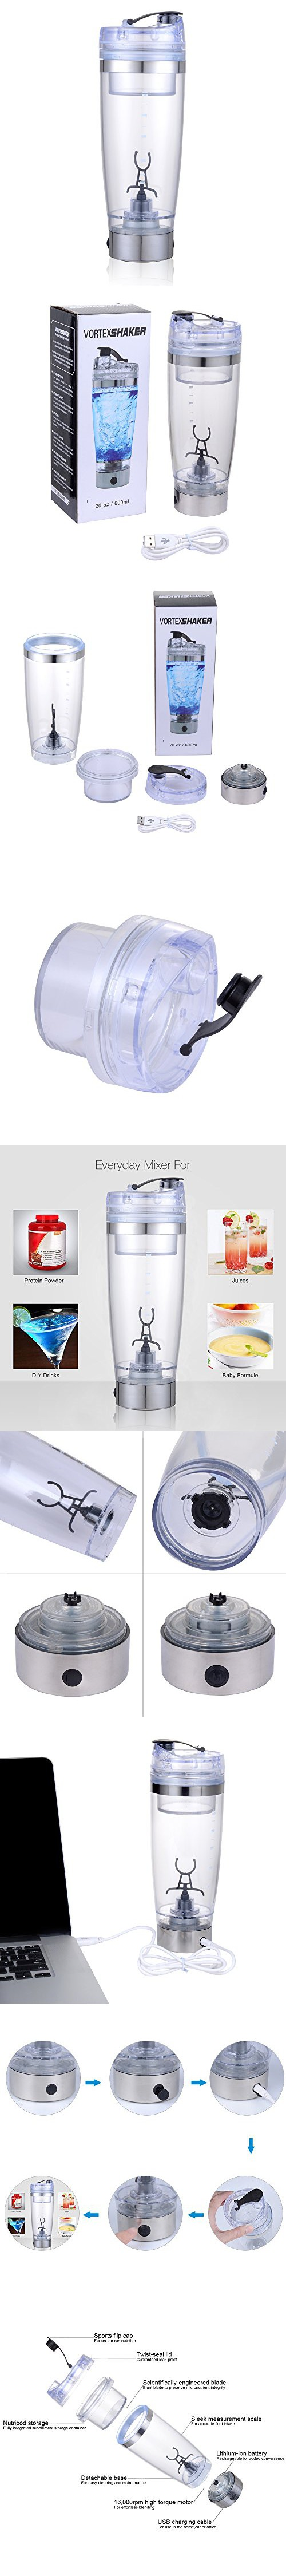 USB Rechargeable Protein Shaker Bottle Electric Vortex Mixer Cup